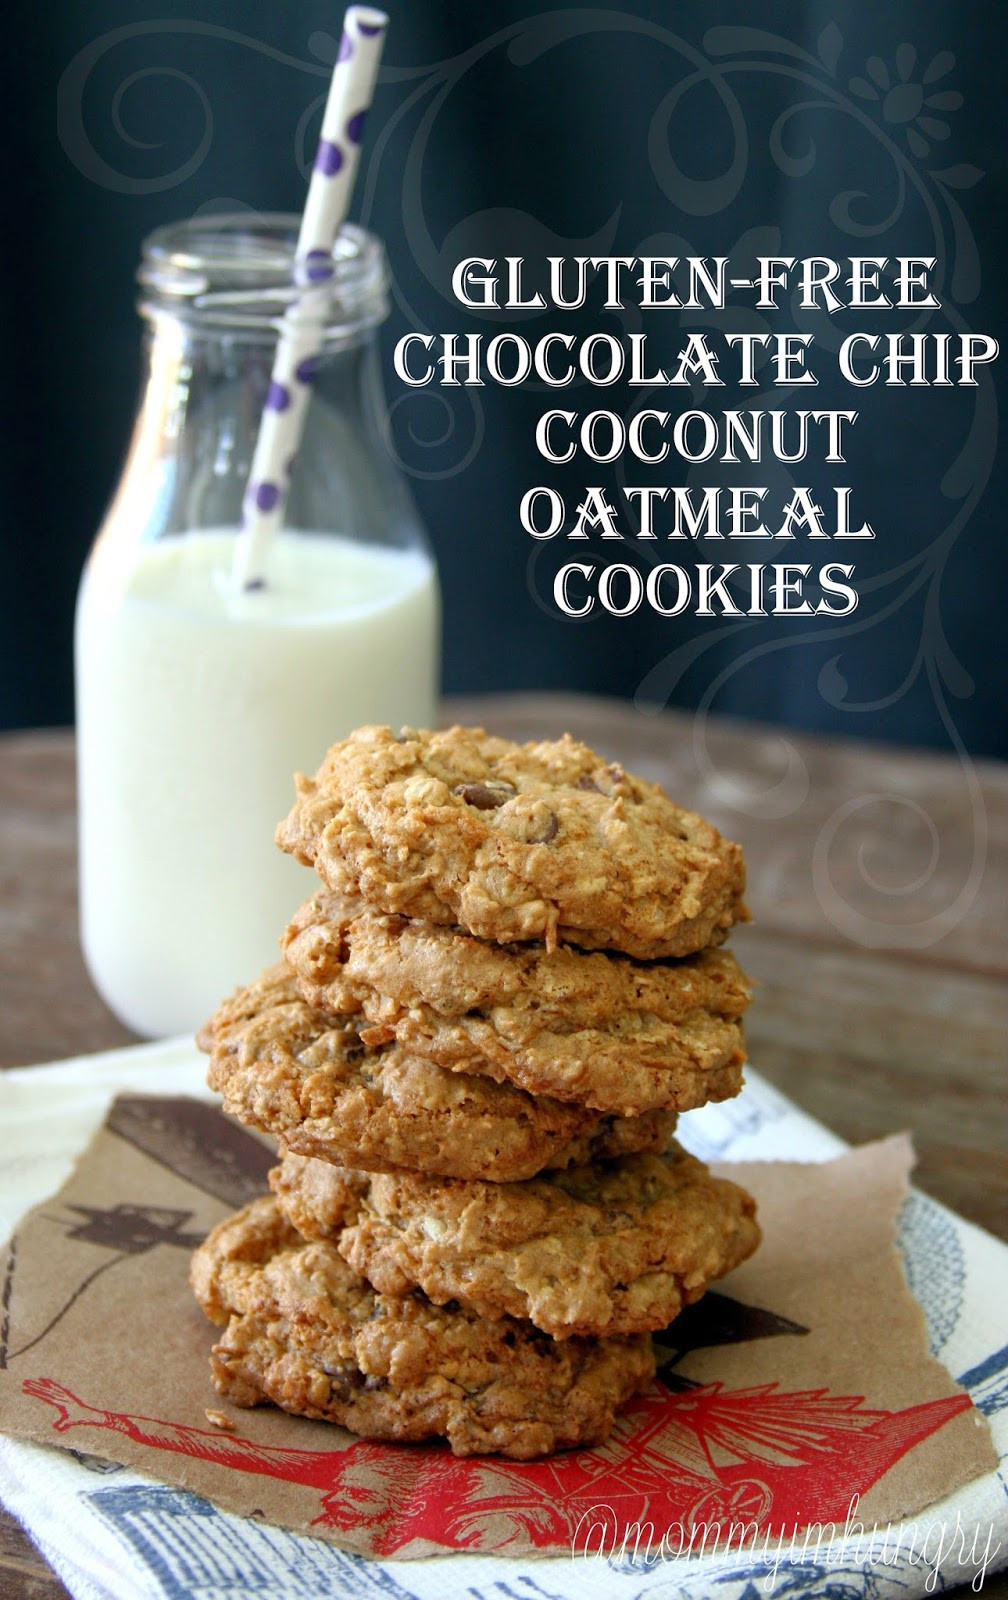 Gluten Free Oatmeal Coconut Cookies  MIH Recipe Blog Gluten Free Chocolate Chip Coconut